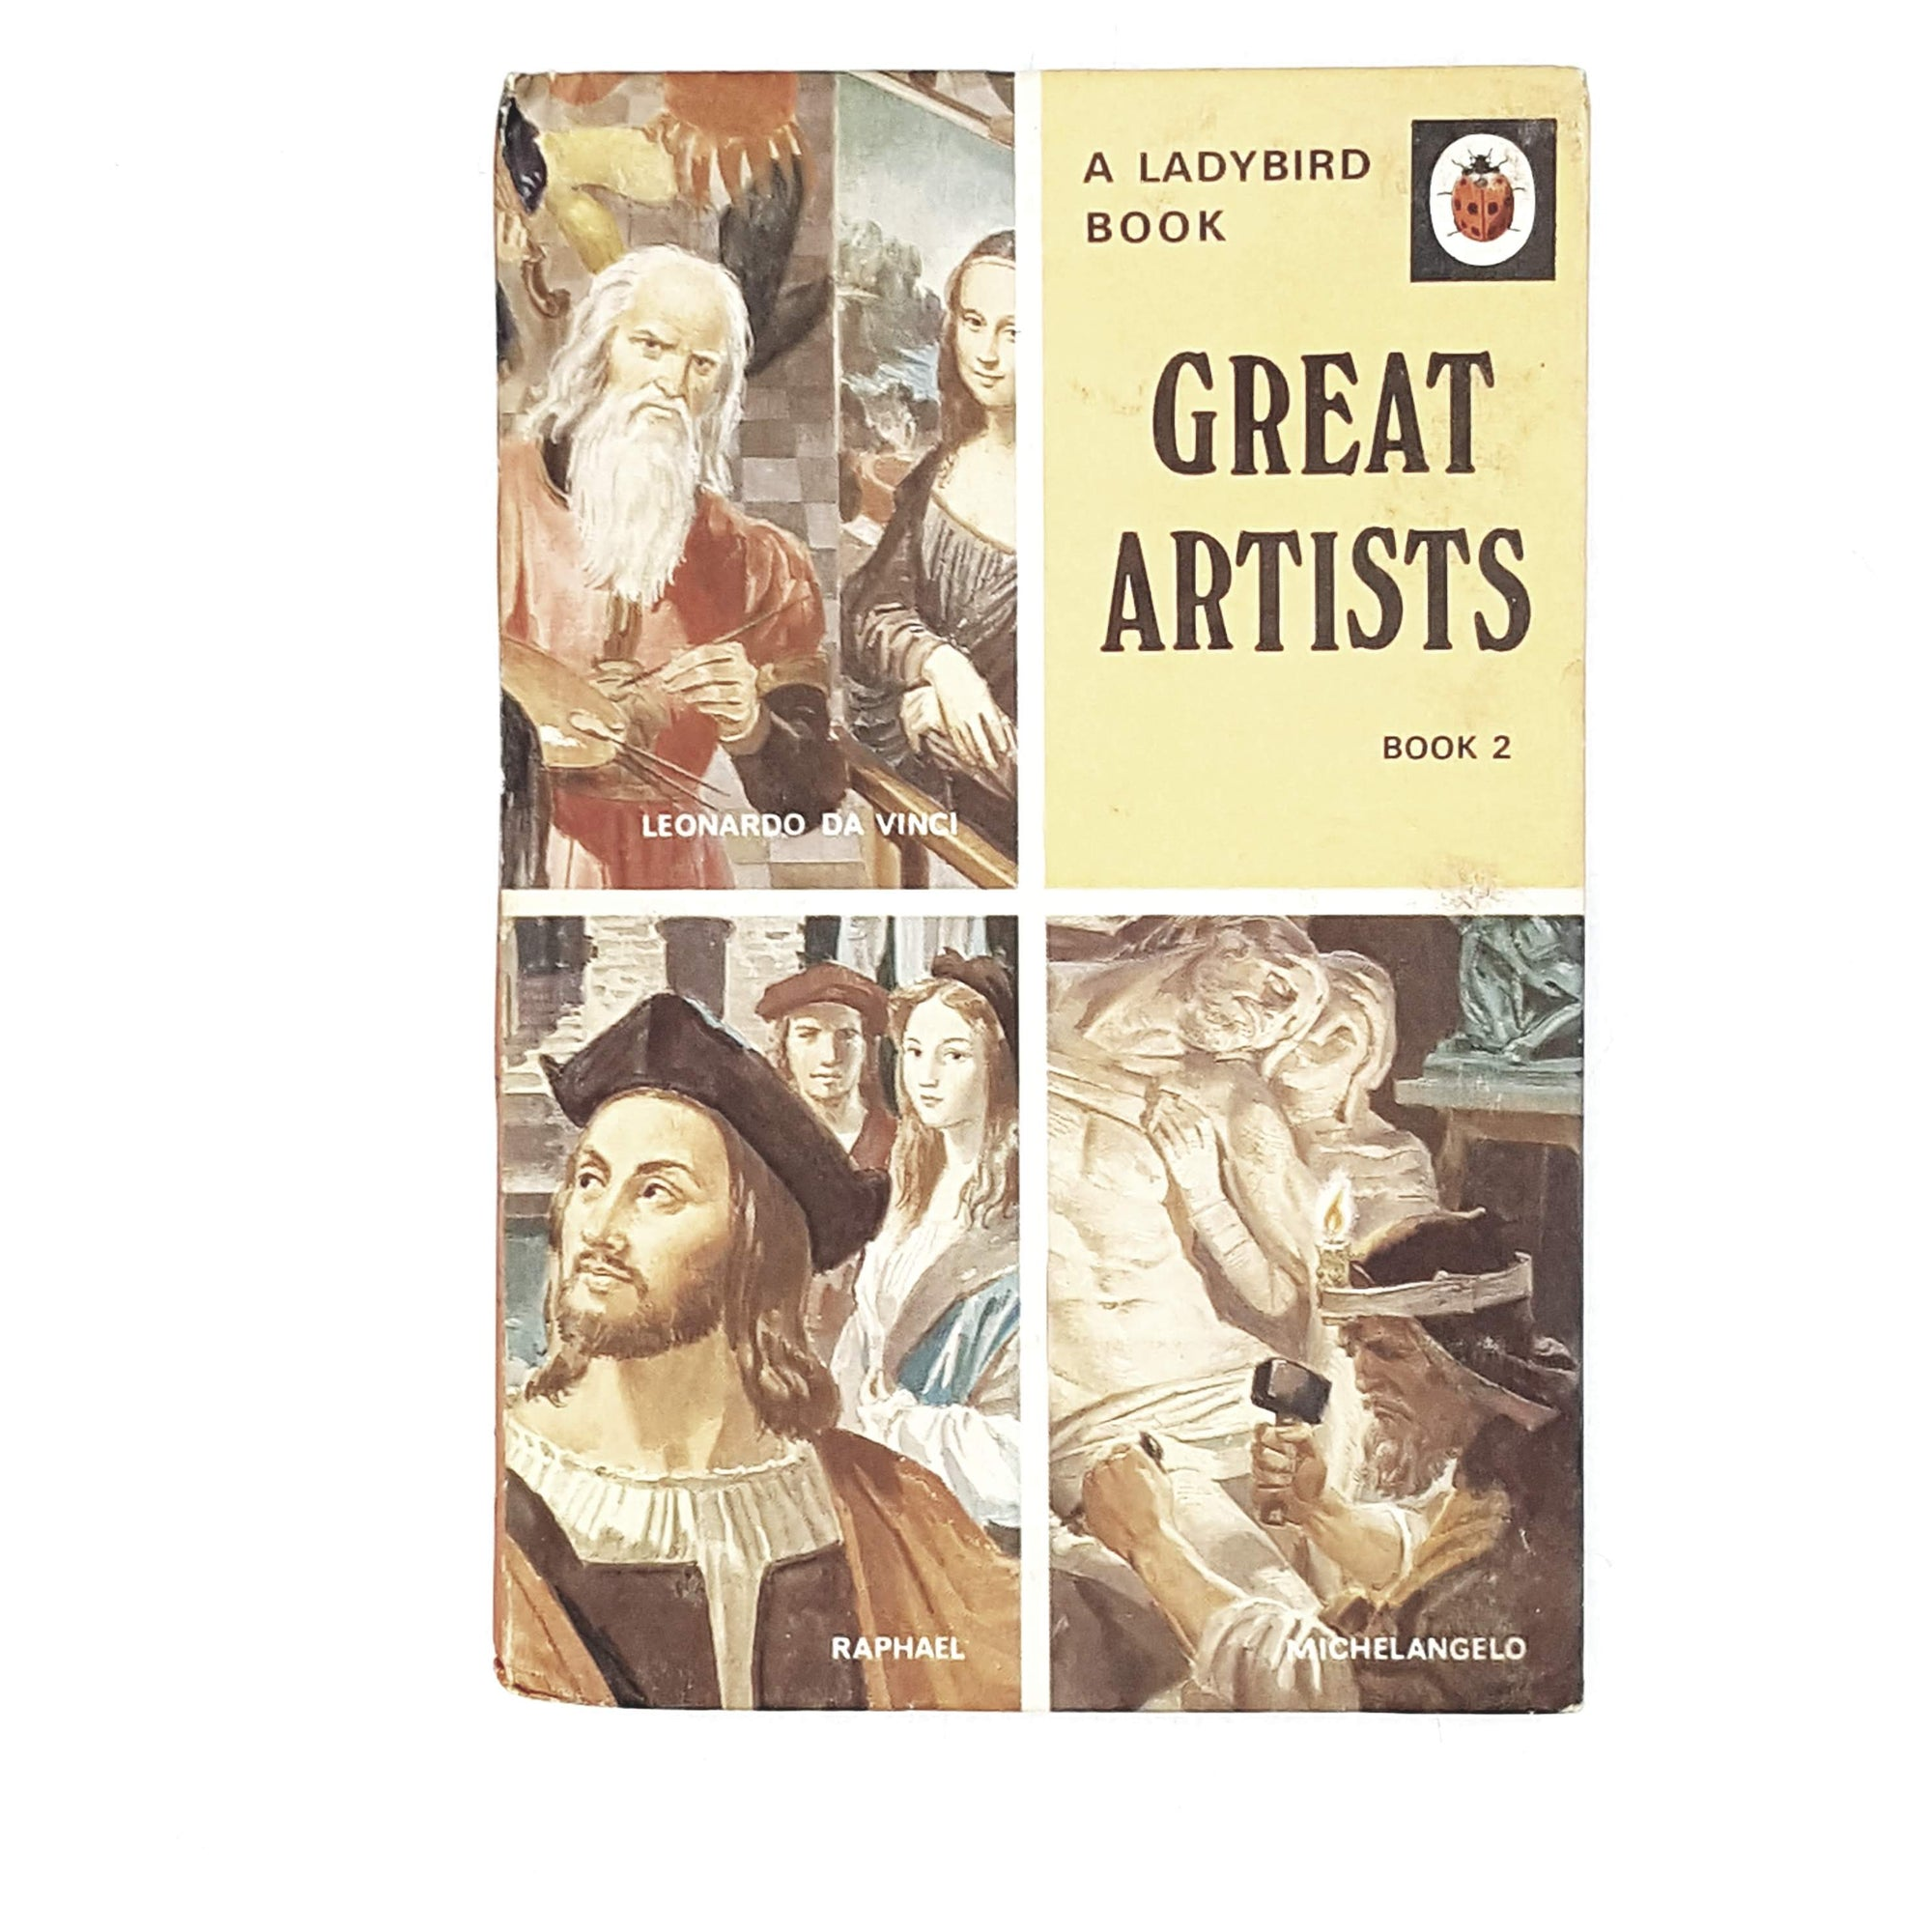 Vintage Ladybird: Great Artists II 1970